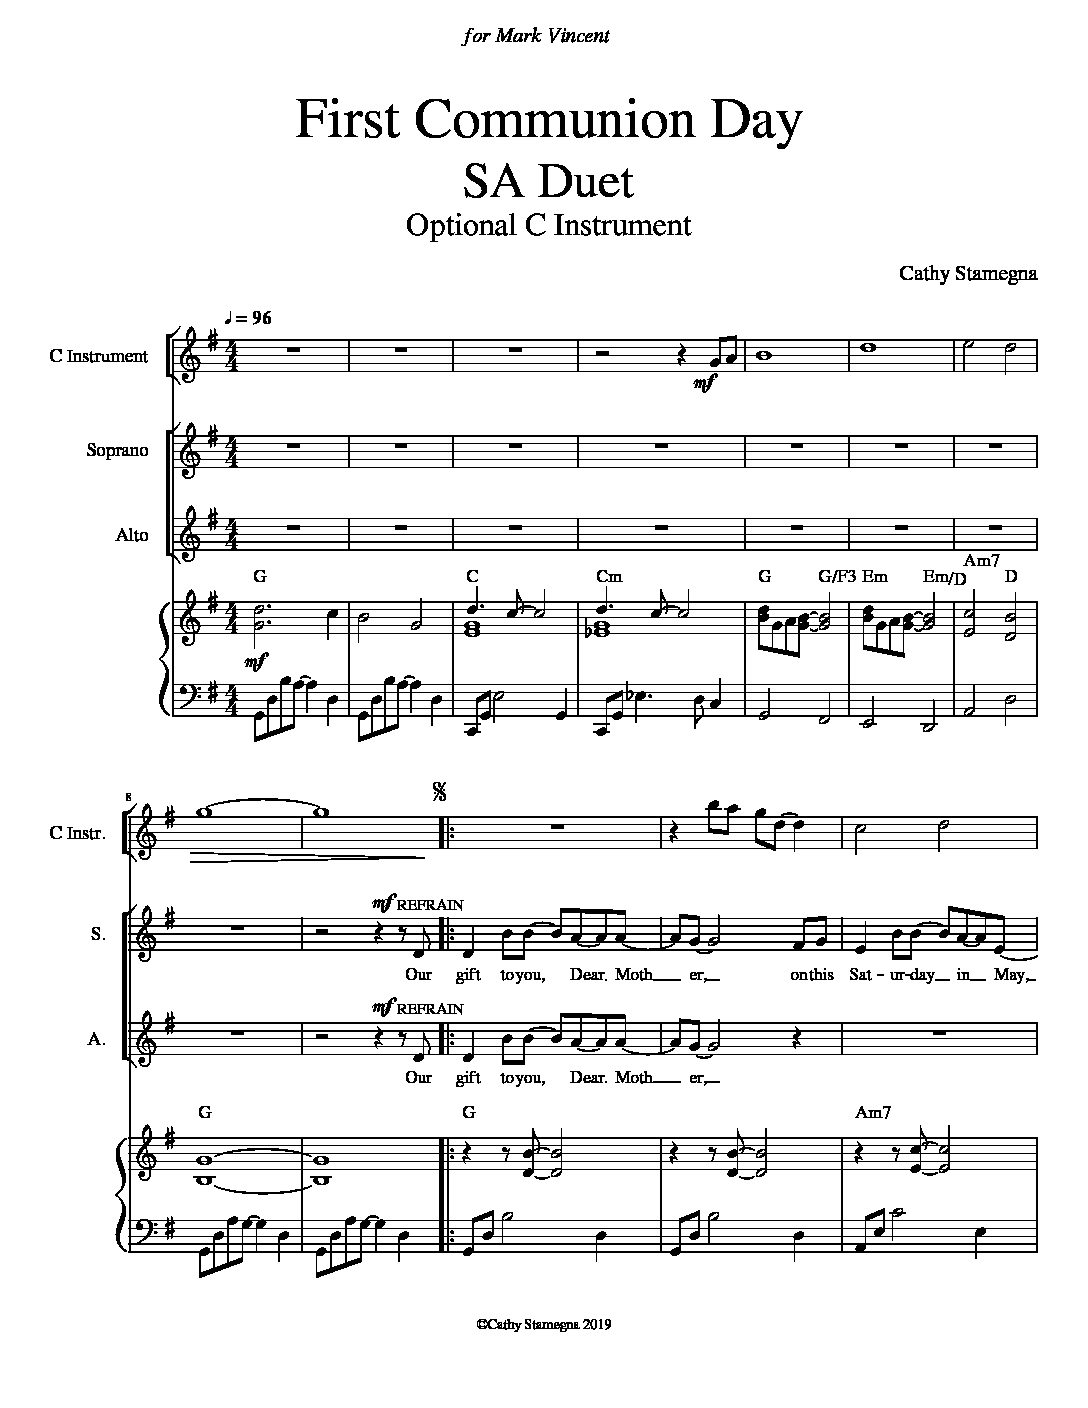 First Communion Day (Chords, Piano Acc., Optional C Instrument) for SA, ST Duet